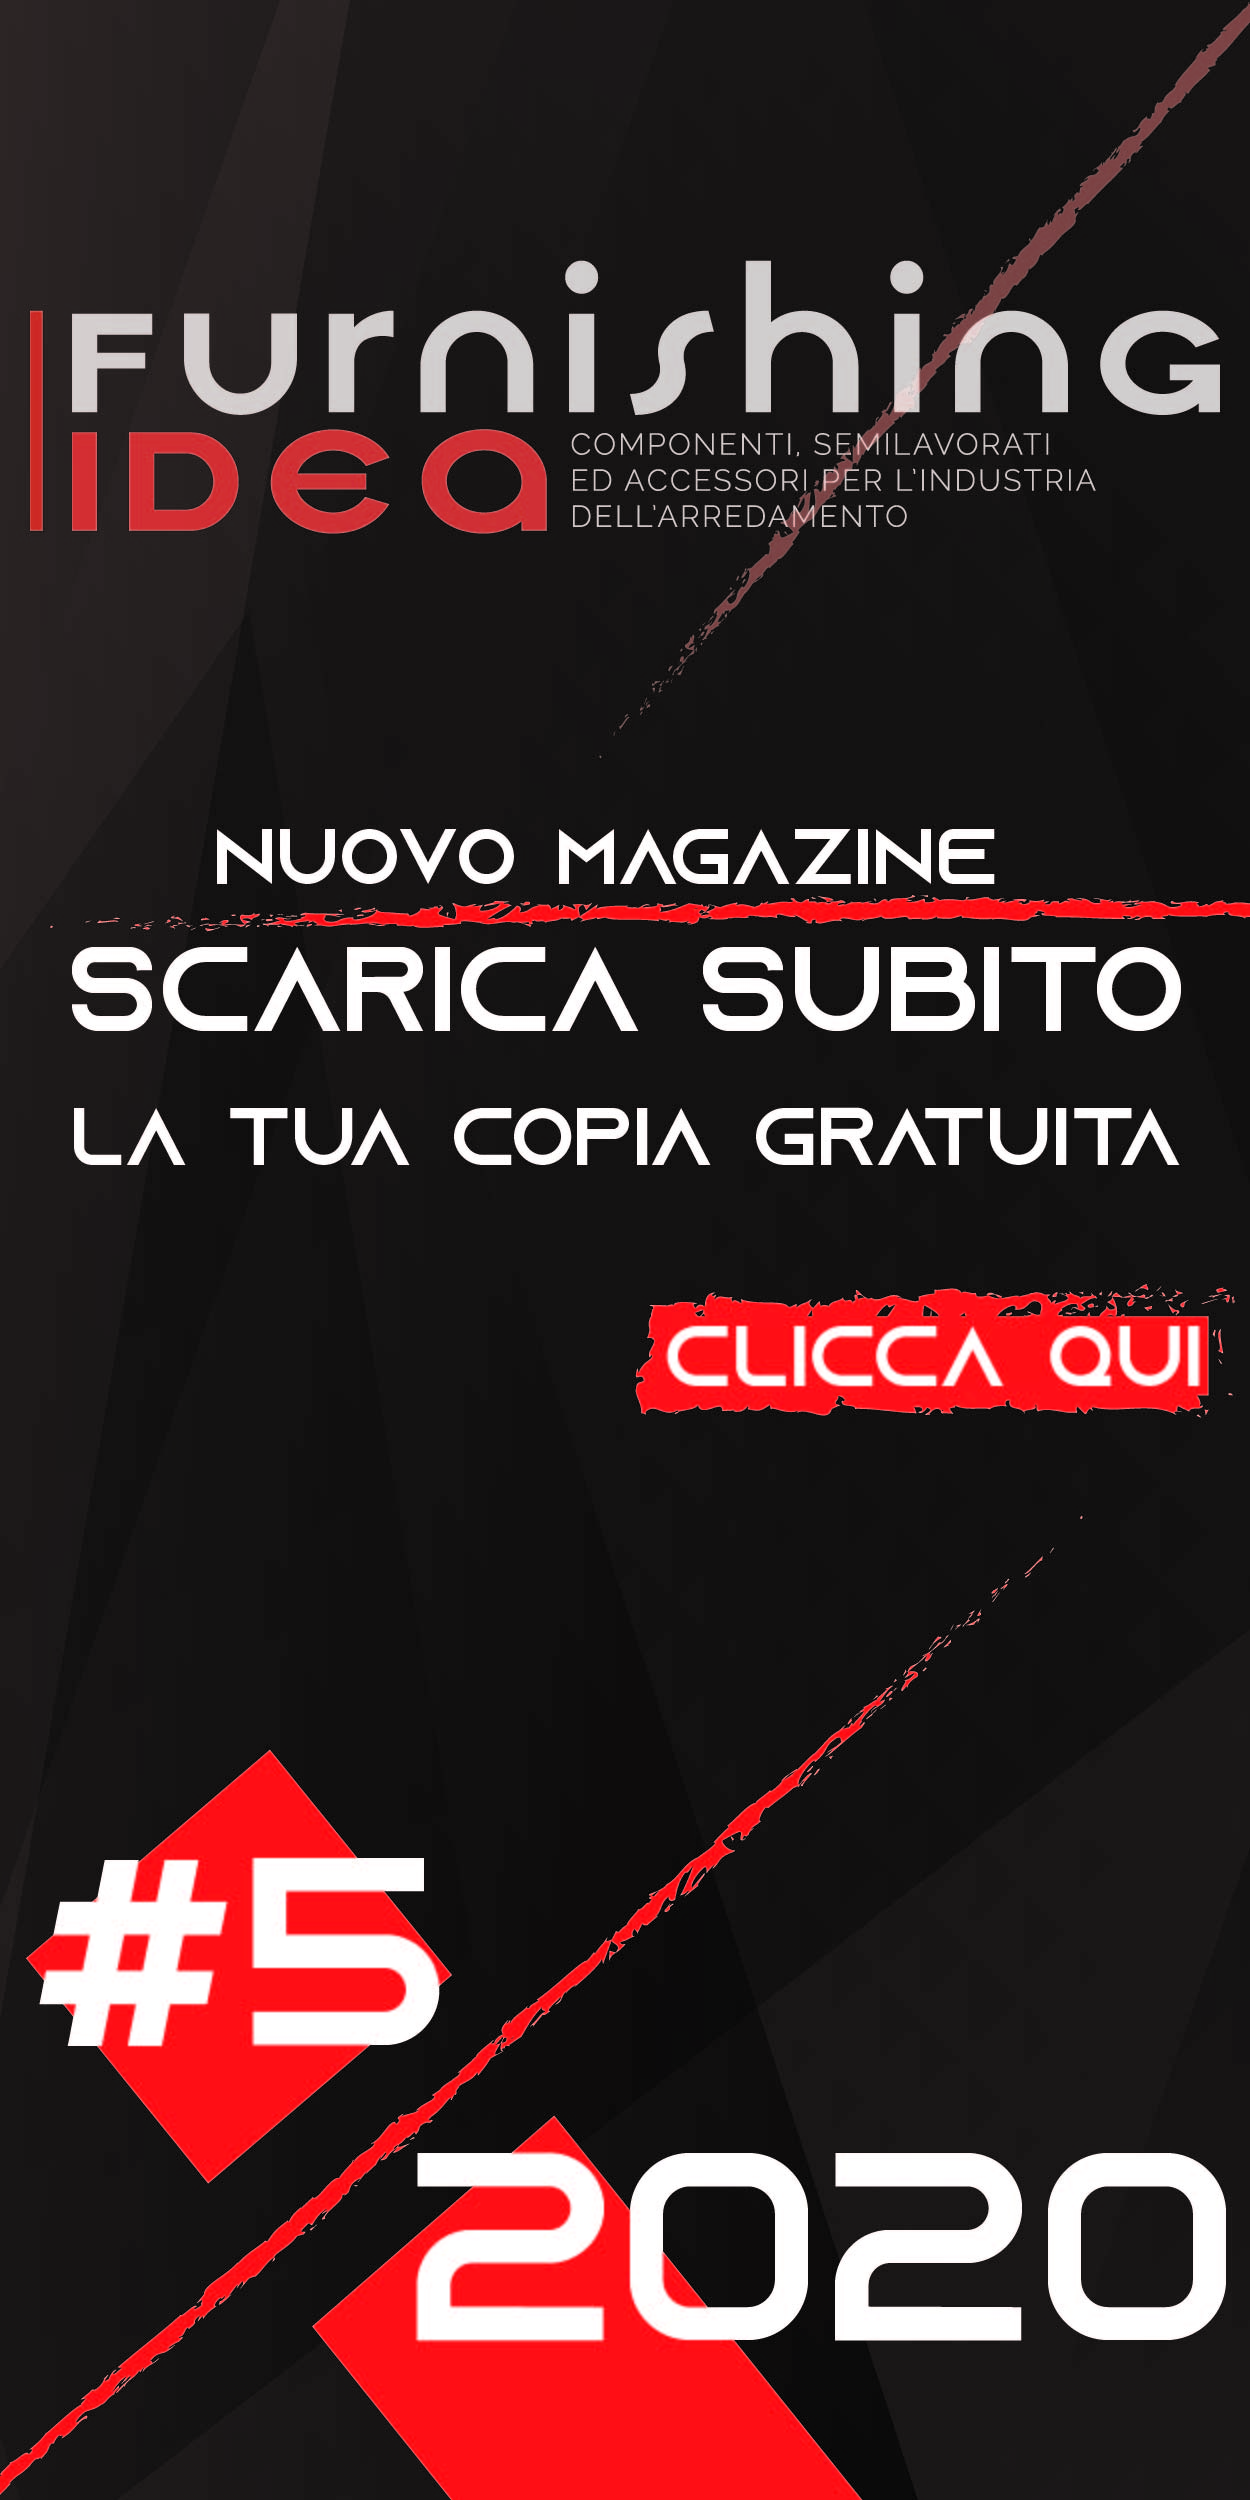 Furnishing Scarica magazine 5 2020 IT